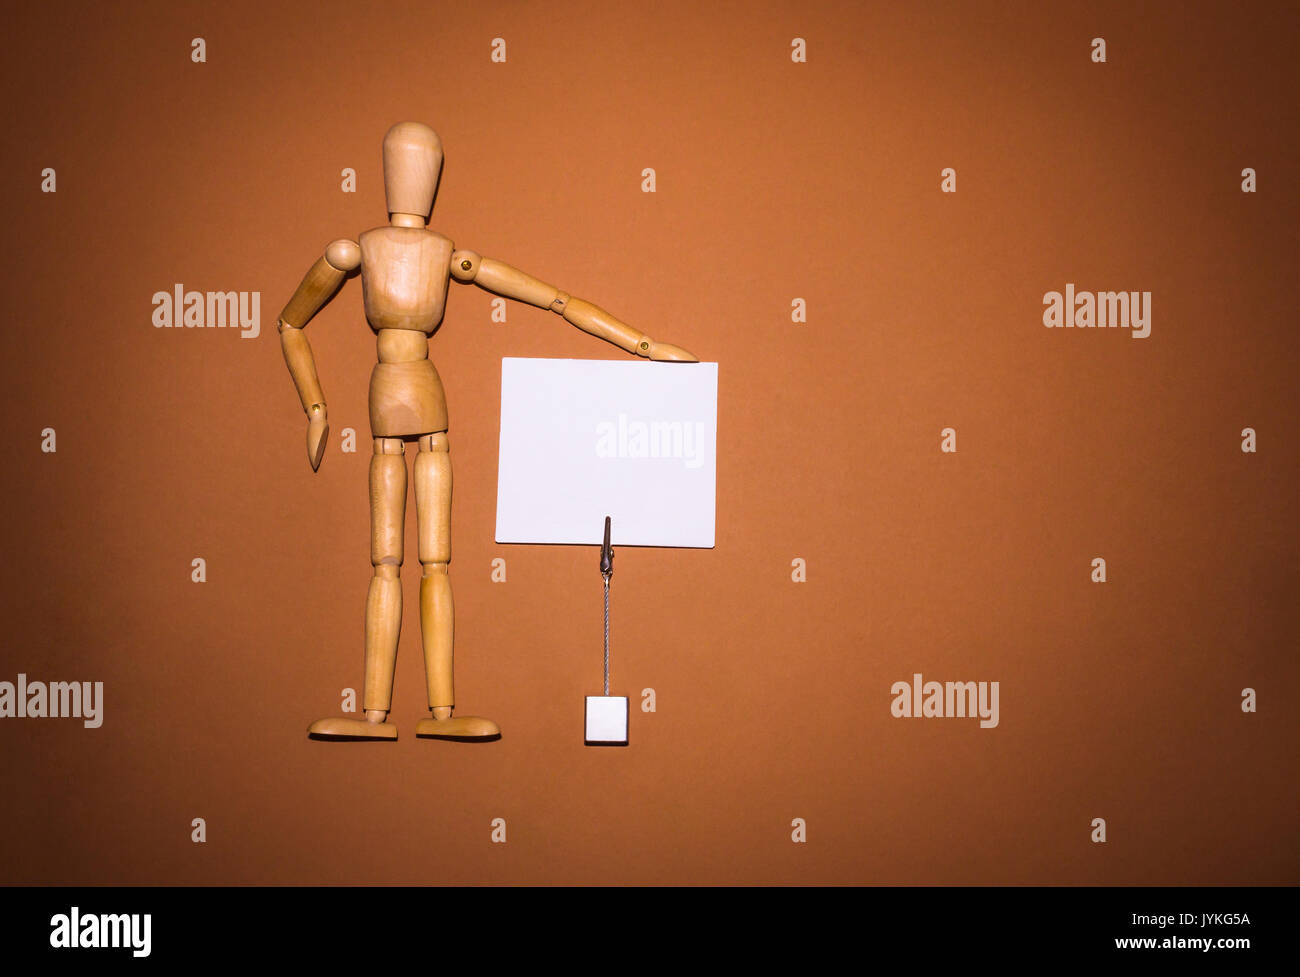 Selection Of Toy Stock Photos & Selection Of Toy Stock ...